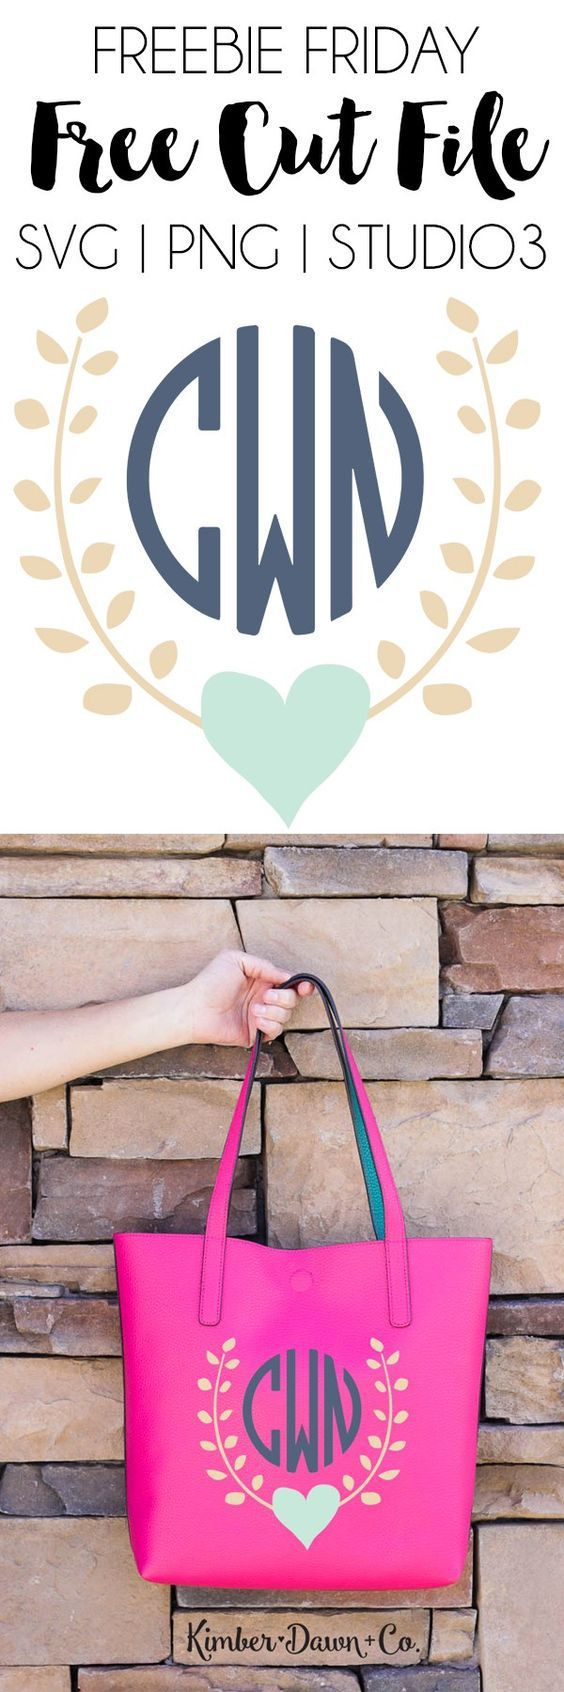 A DIY Monogram Tote Bag - This tote bag is a super chic College friendly project. AND there's a free cut file! You can use free cut files with any cutting machine software (that's SVG, PNG, STUDIO3). This is the first monogram I have seen that I actually